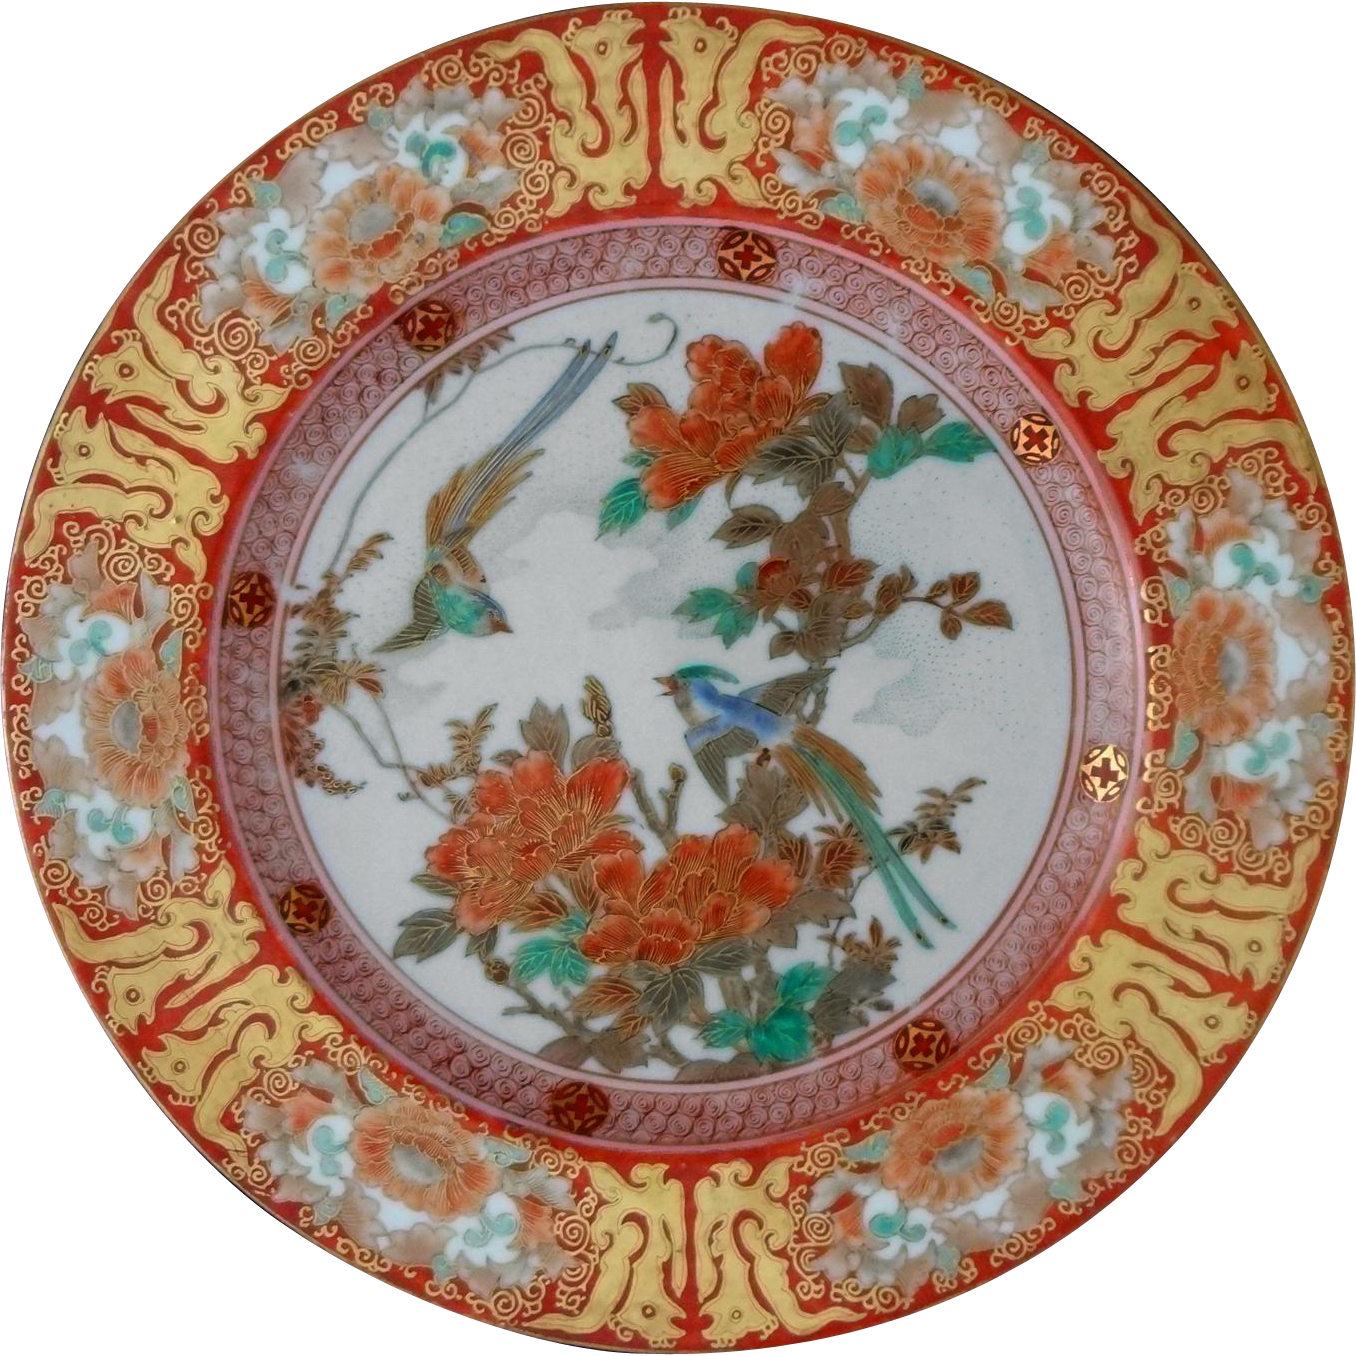 Japanese Meiji Kutani Birds Flowers Iron Red and Gilt Hand Painted Porcelain Plate / Dish - Meiji Period, Japan